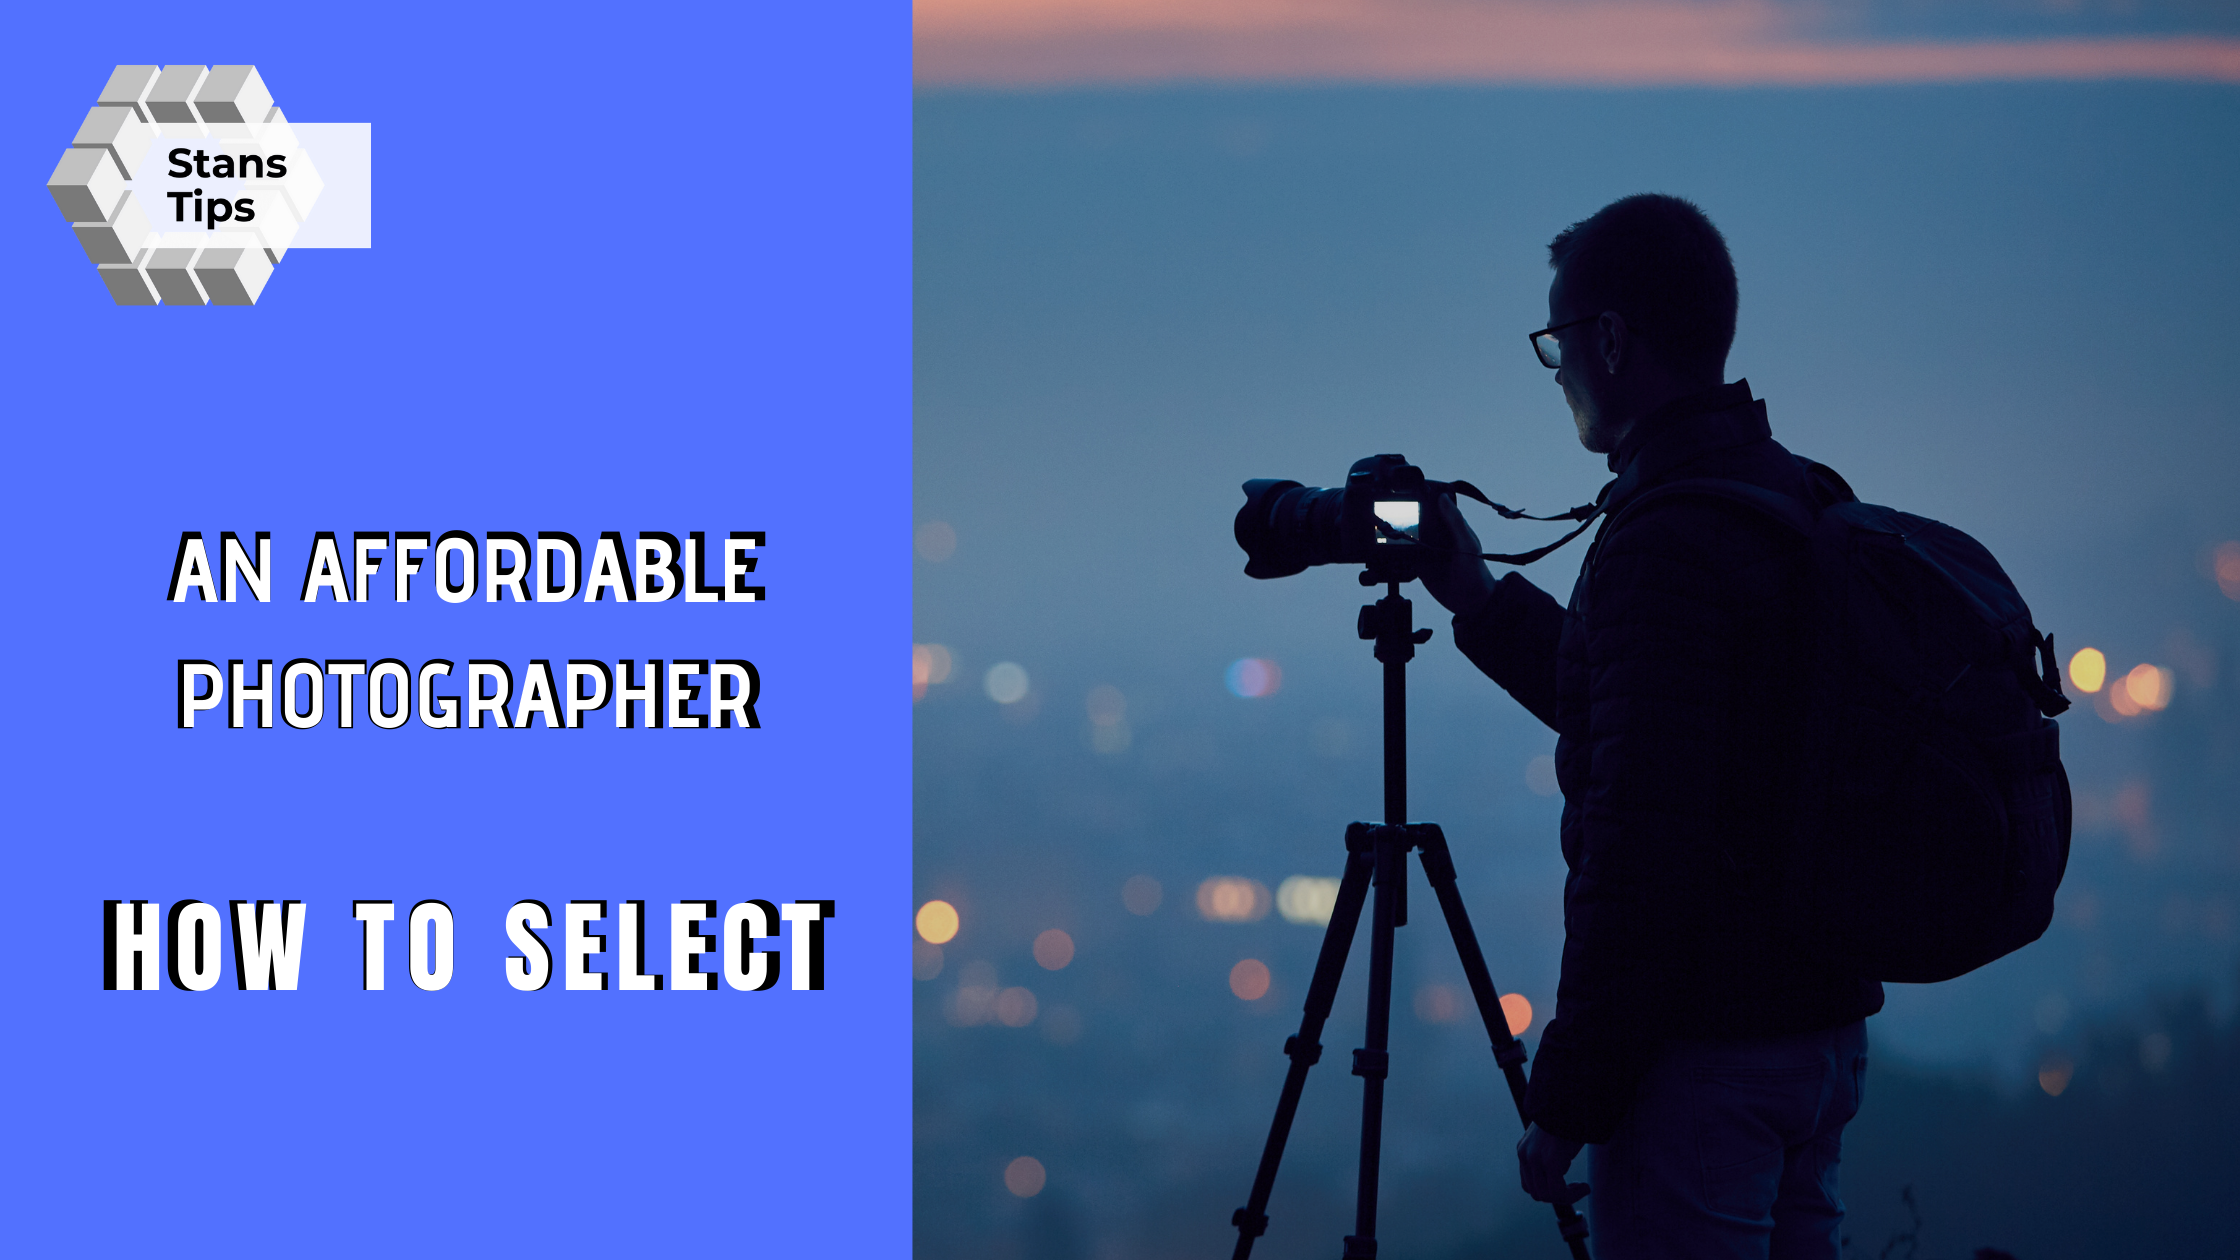 How To Select An Affordable Photographer